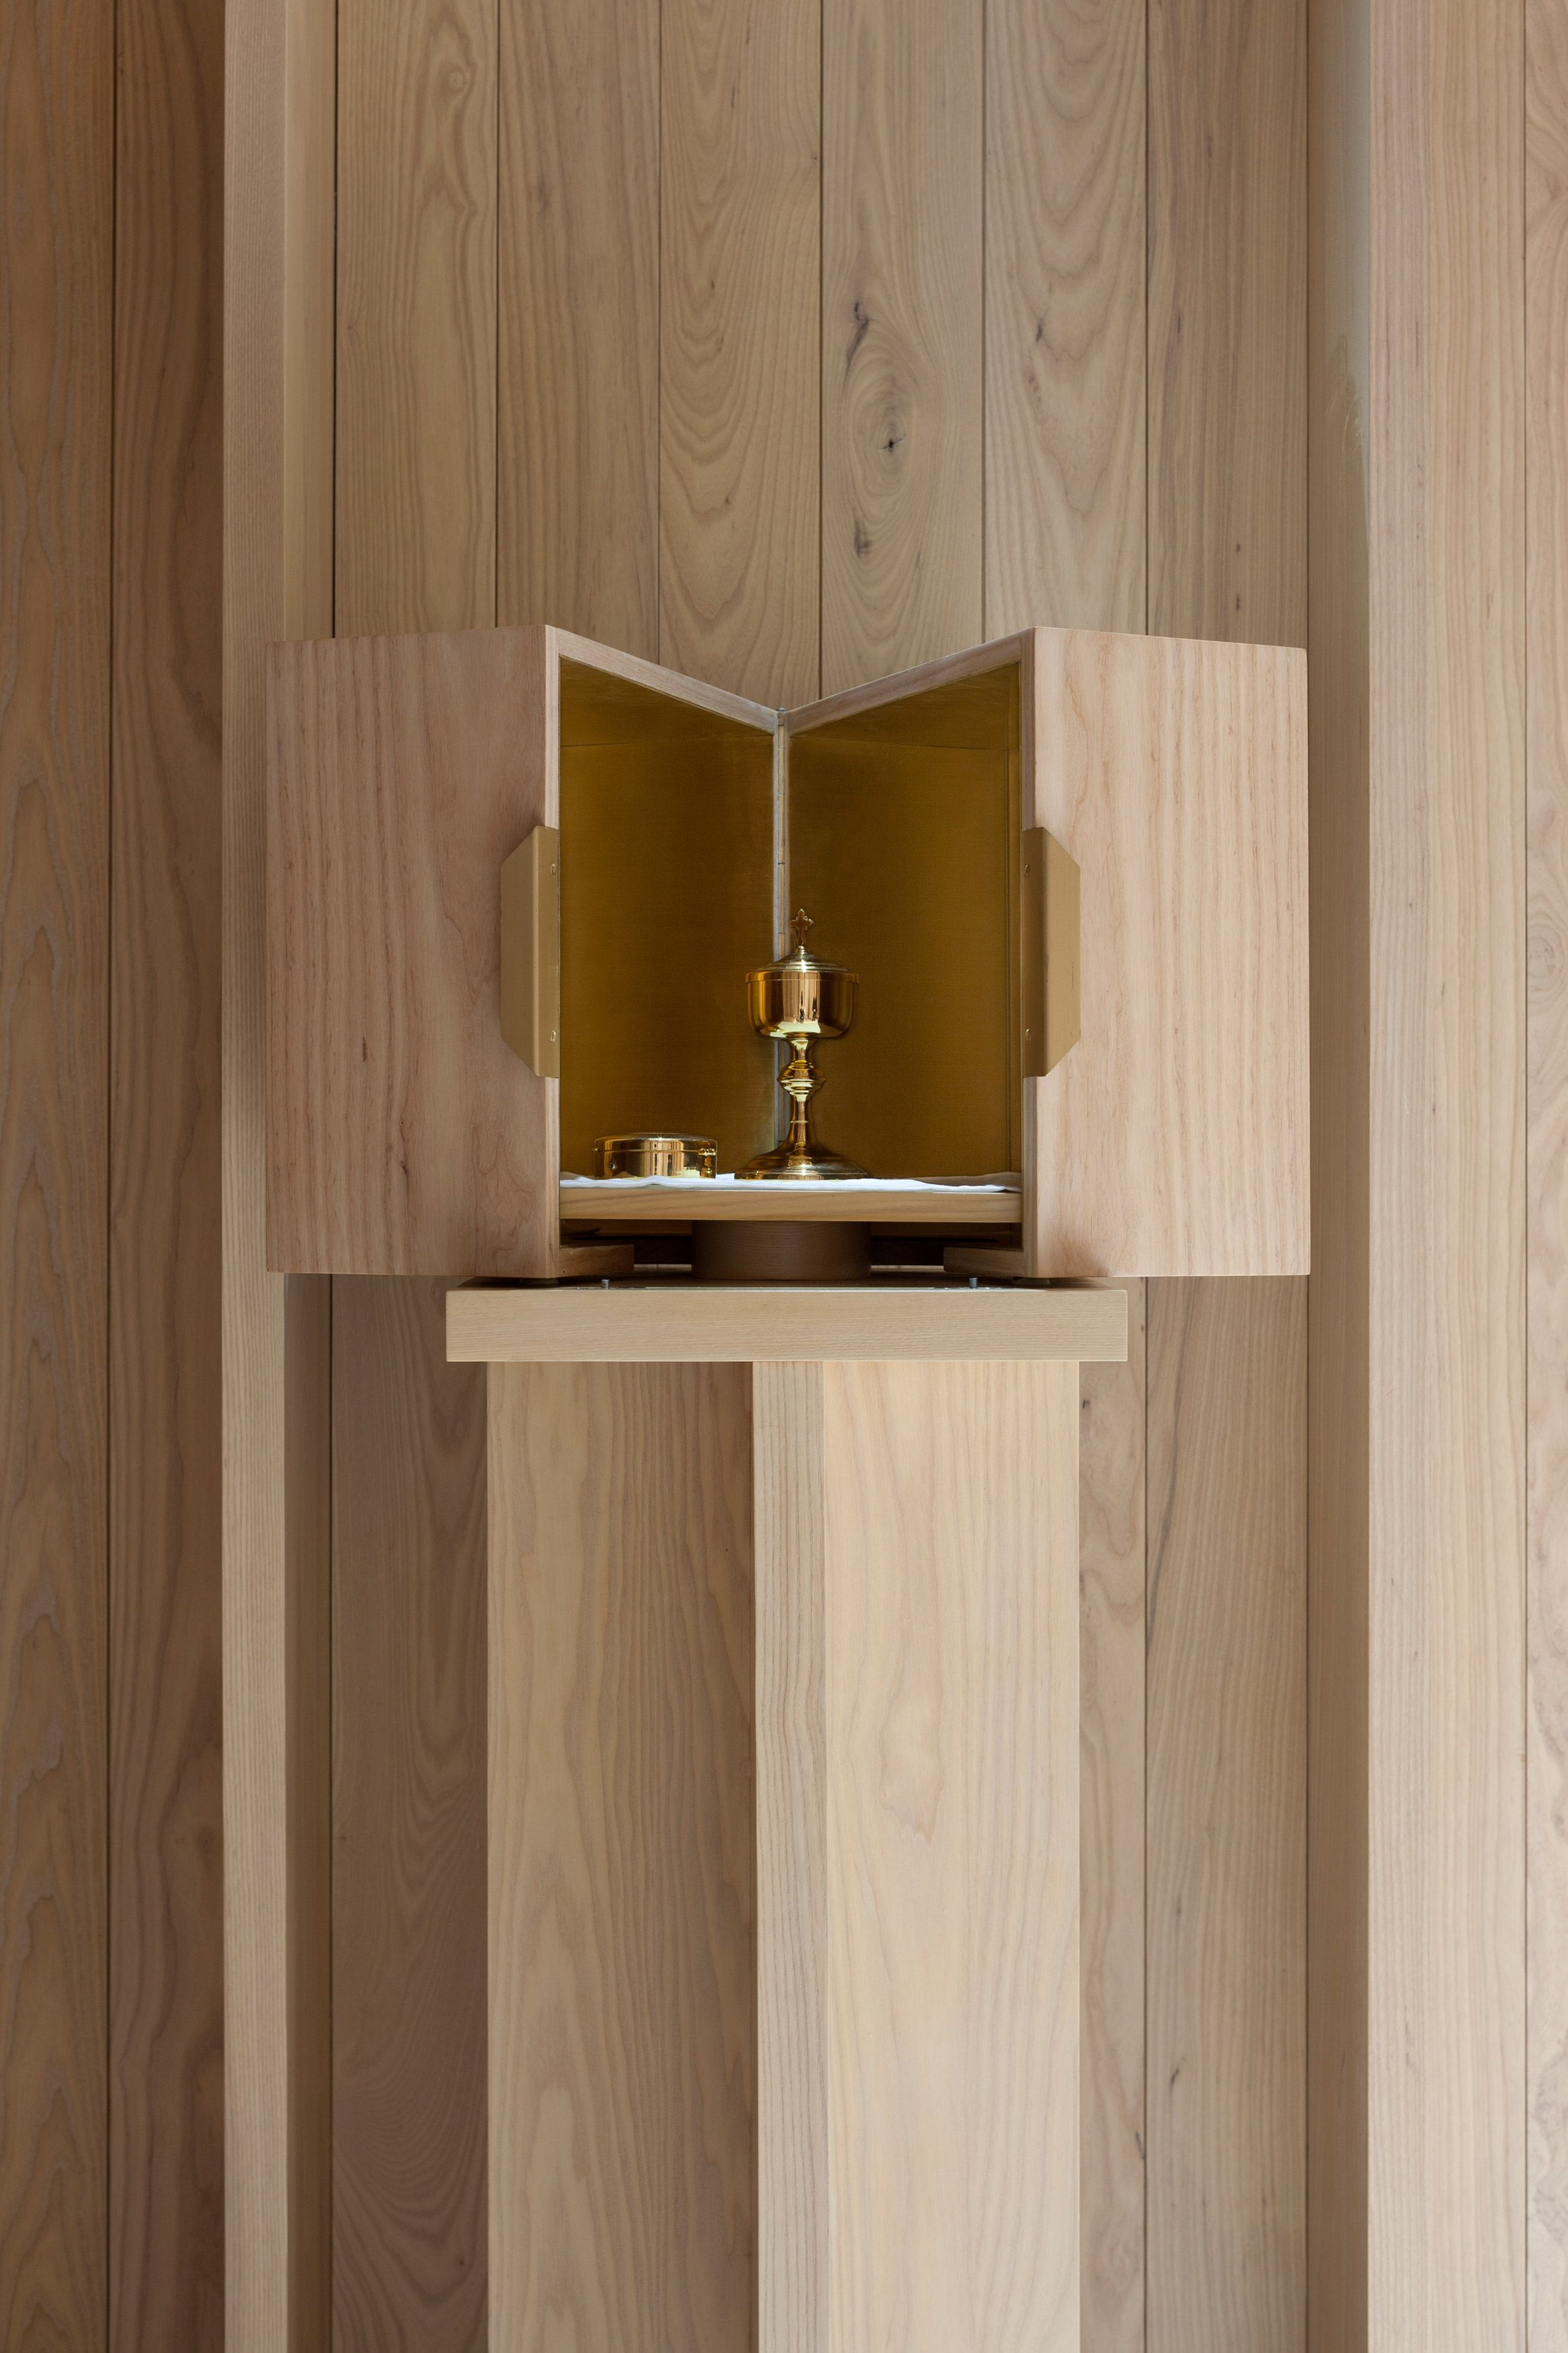 Niall McLaughlin Architects Has Refurbished A Prayer Room At A Priory In  Dublin, Placing Walls And Furniture Made From Solid Ash Wood Inside The  Existing ...